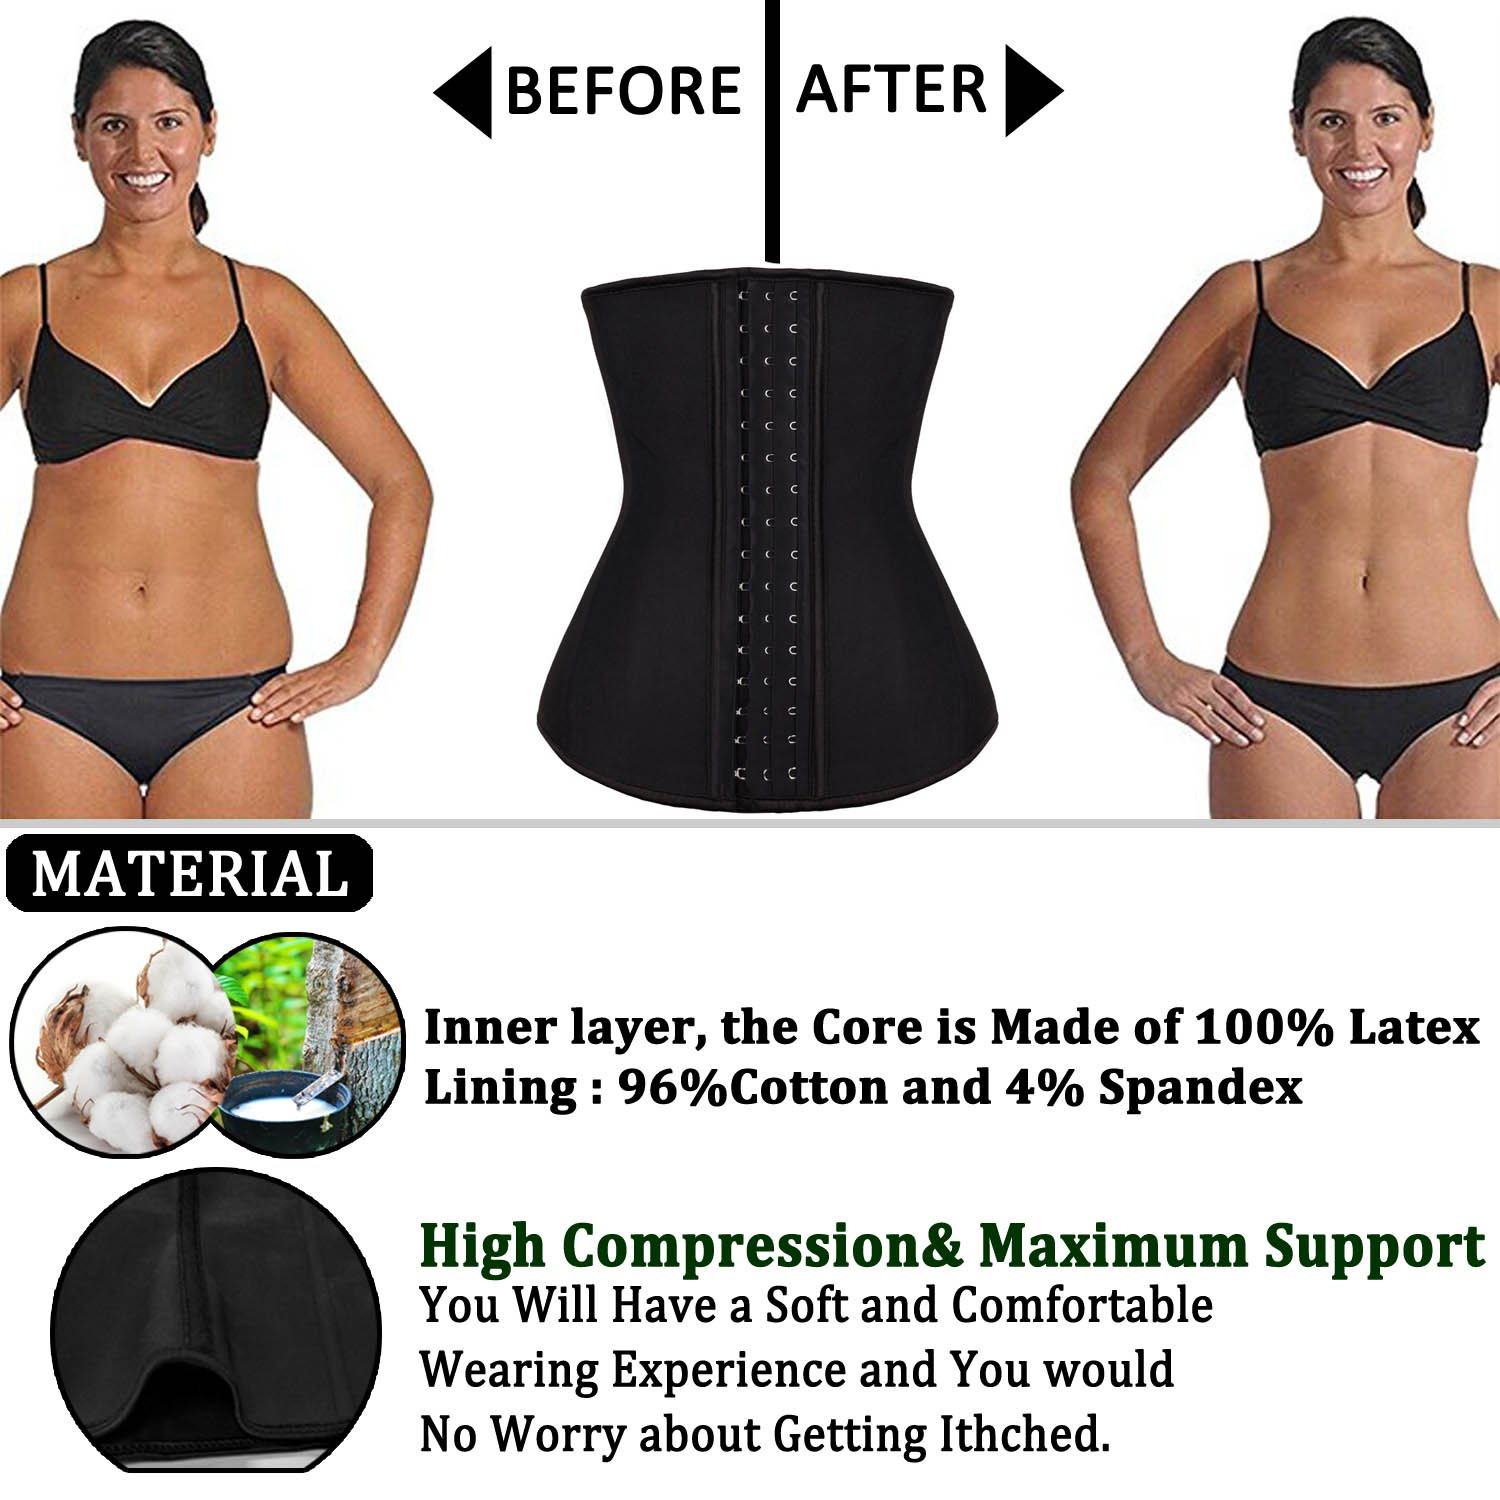 2fa99a76bc Amazon.com  ROMUCHE Waist Trainer Corset for Weight Loss - Body Shaper for  Women Waist Cincher Slimmer Workout  Sports   Outdoors